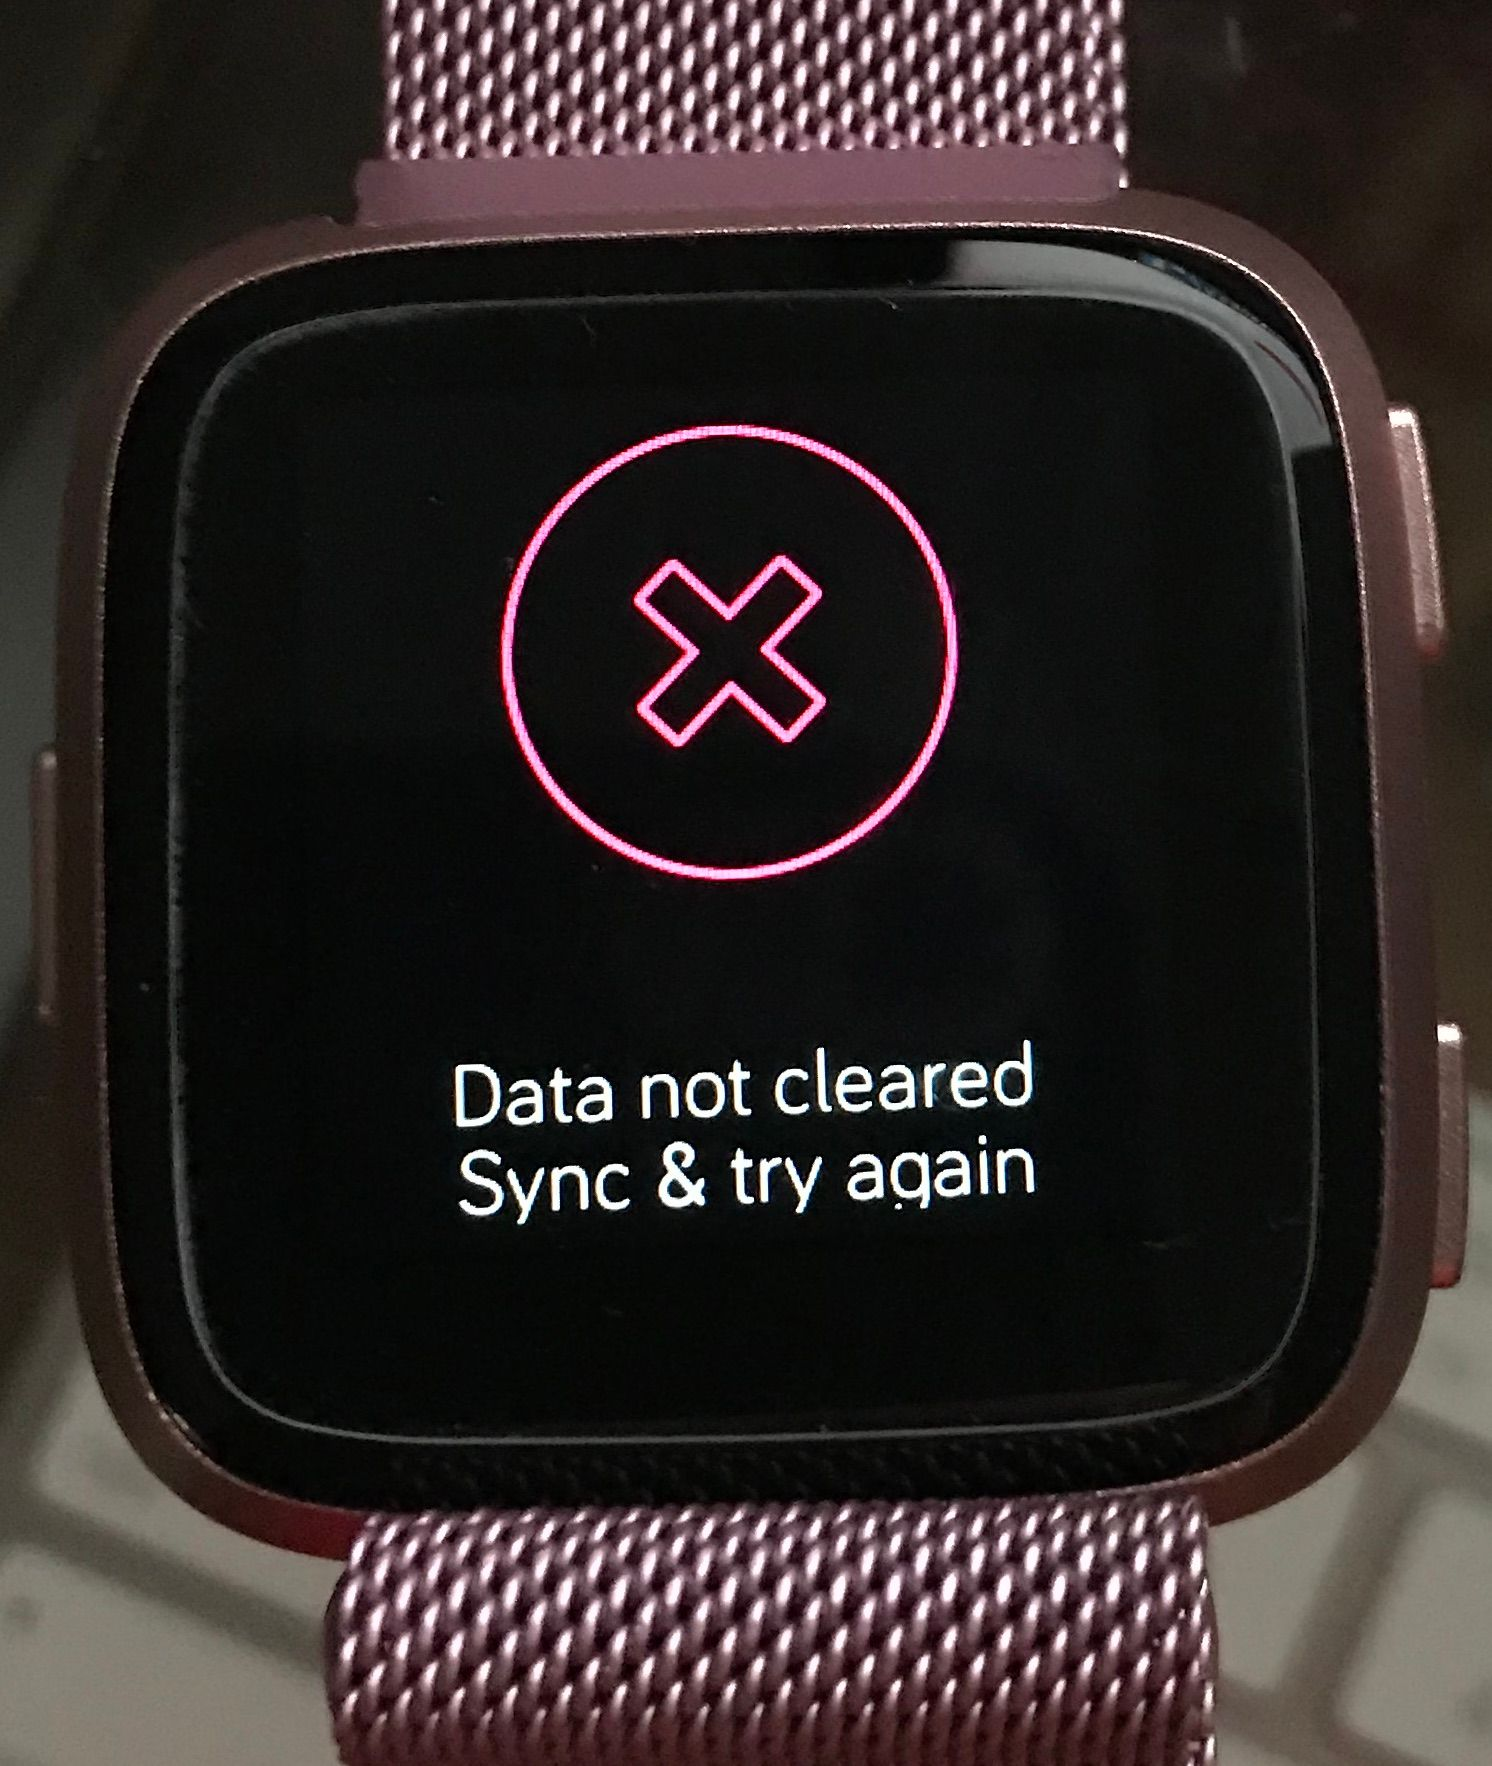 Data not cleared Sync and try again - Fitbit Community